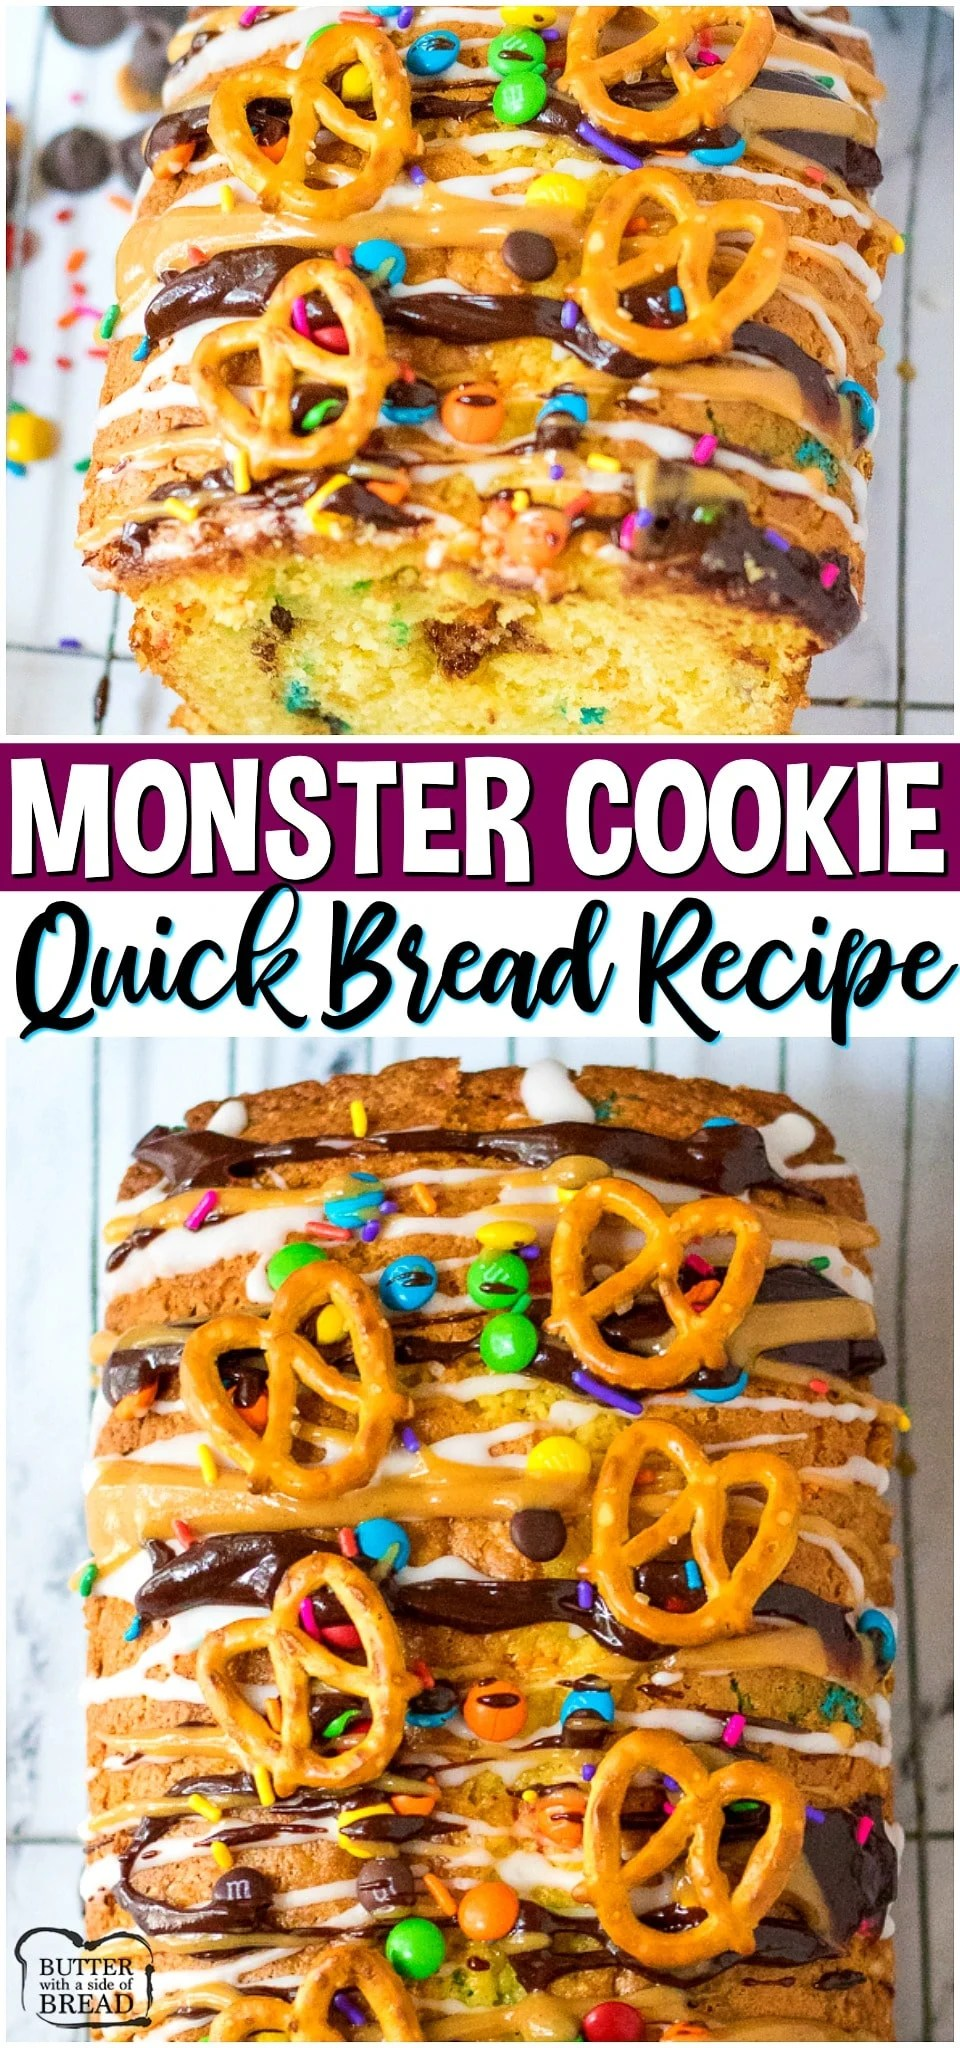 Monster Cookie Bread is everything you love about Monster Cookies, in bread form! Loaded sweet bread with chocolate & peanut butter chips, M&M's sprinkles and more! Wow your crowd with this over-the-top quick bread perfect for snack or dessert! #bread #sweet #quickbread #monster #monstercookie #chocolate #caramel #recipe from BUTTER WITH A SIDE OF BREAD